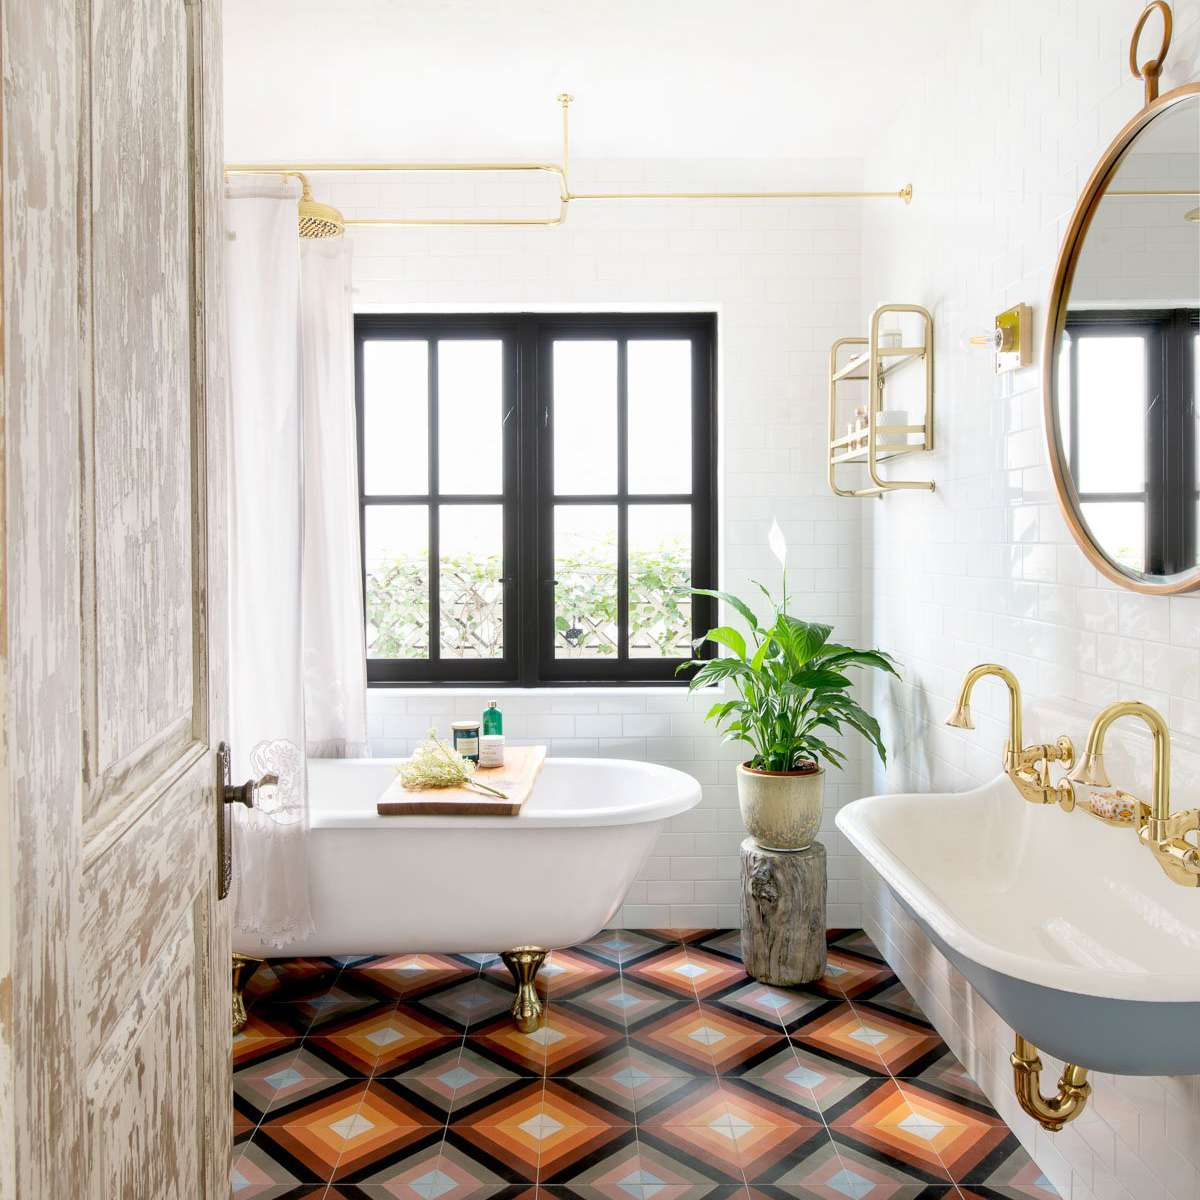 A maximalist bathroom with boldly tiled floors and a double sink